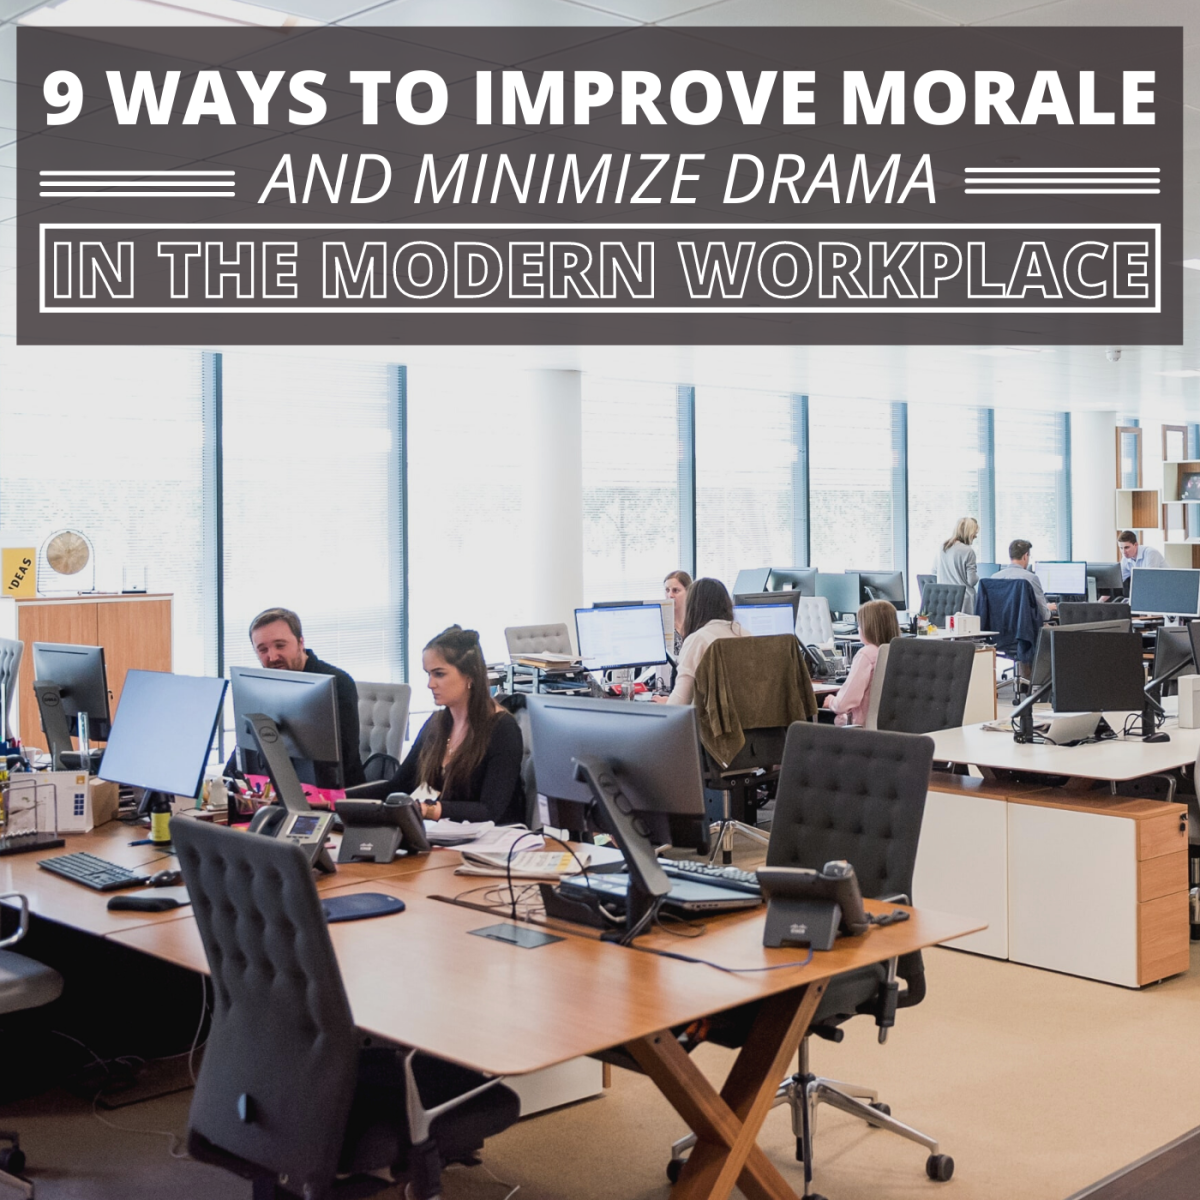 Less drama and higher morale both foster increased productivity in the workplace.